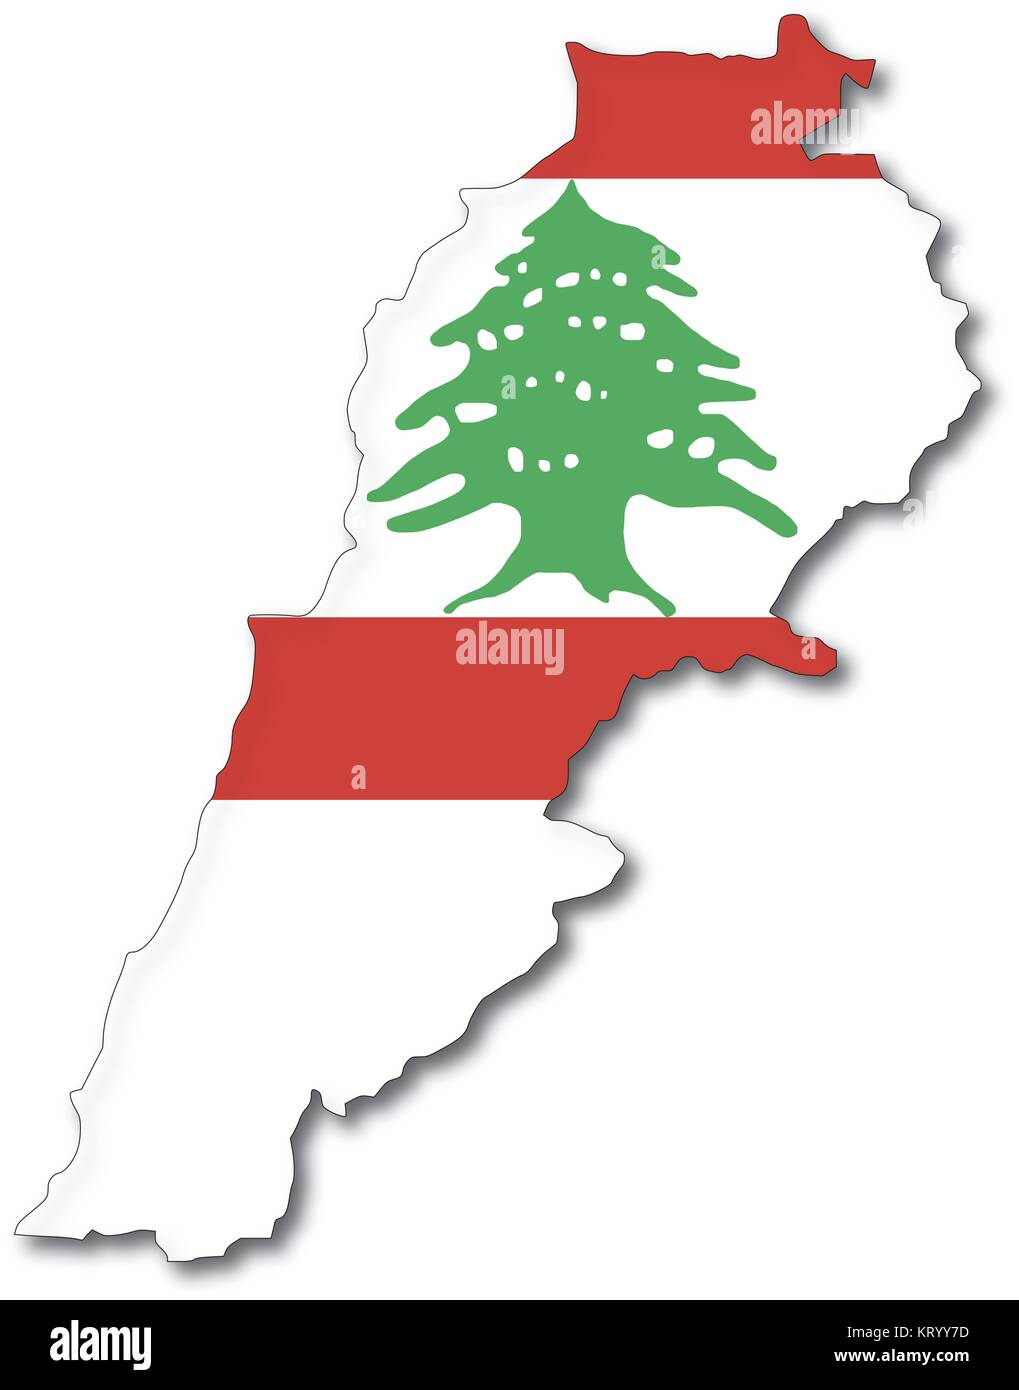 vectorflag map of lebanon, outline drawing with shadow - Stock Image